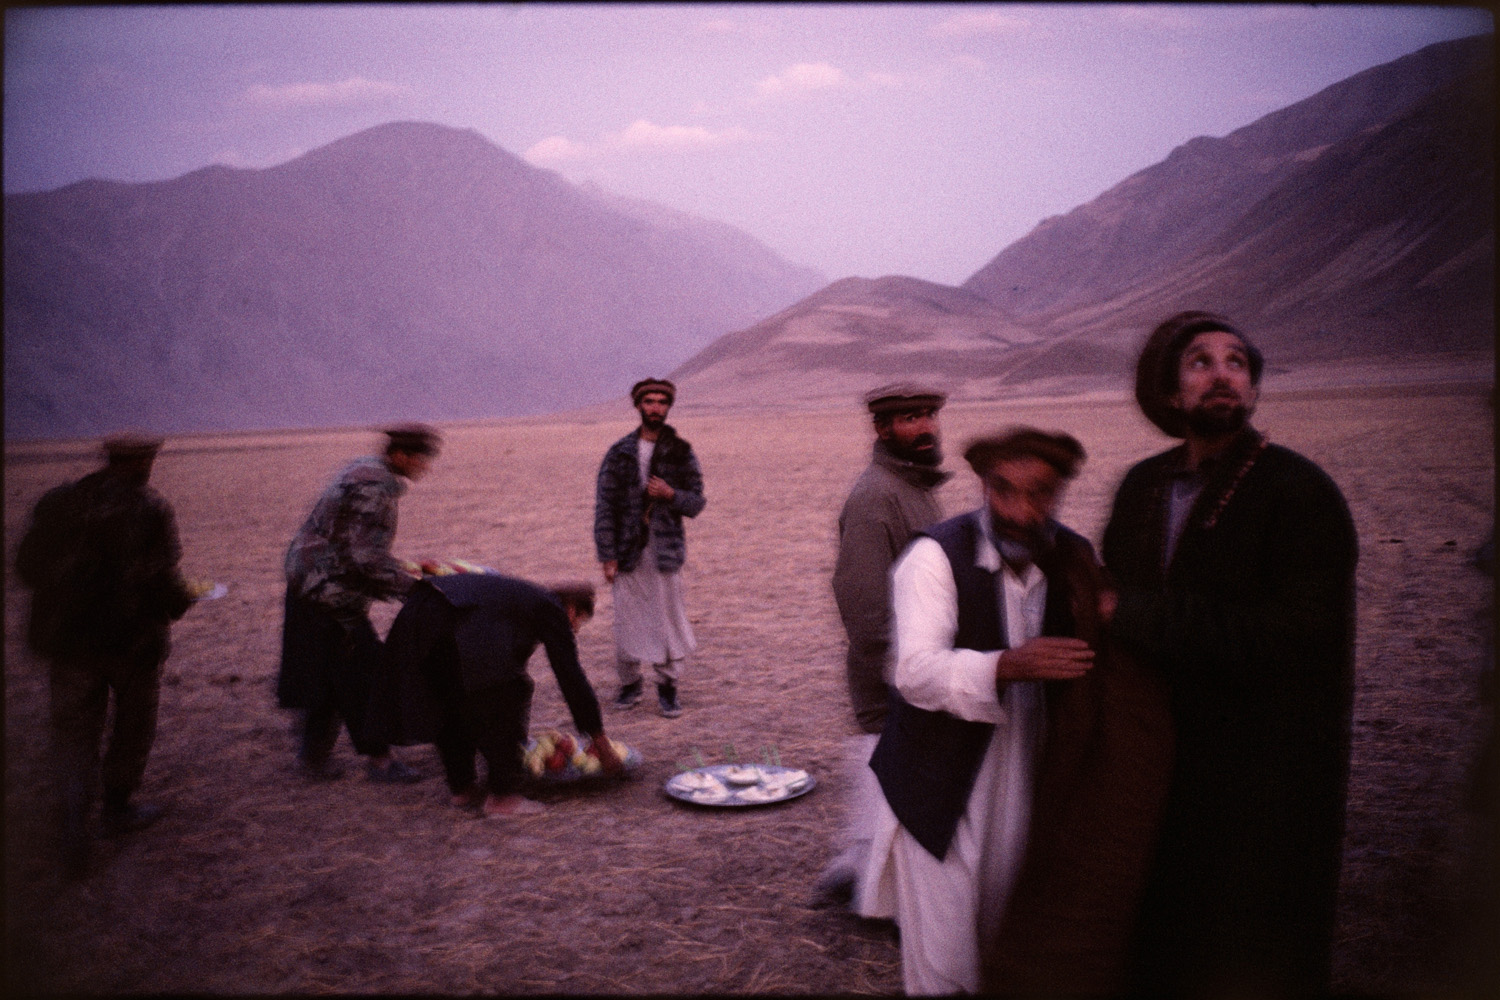 Massoud and friends near Faizabad, Badahkshan Province and the moment is captured following a an early evening prayer session in a fruit orchard. November 1998.